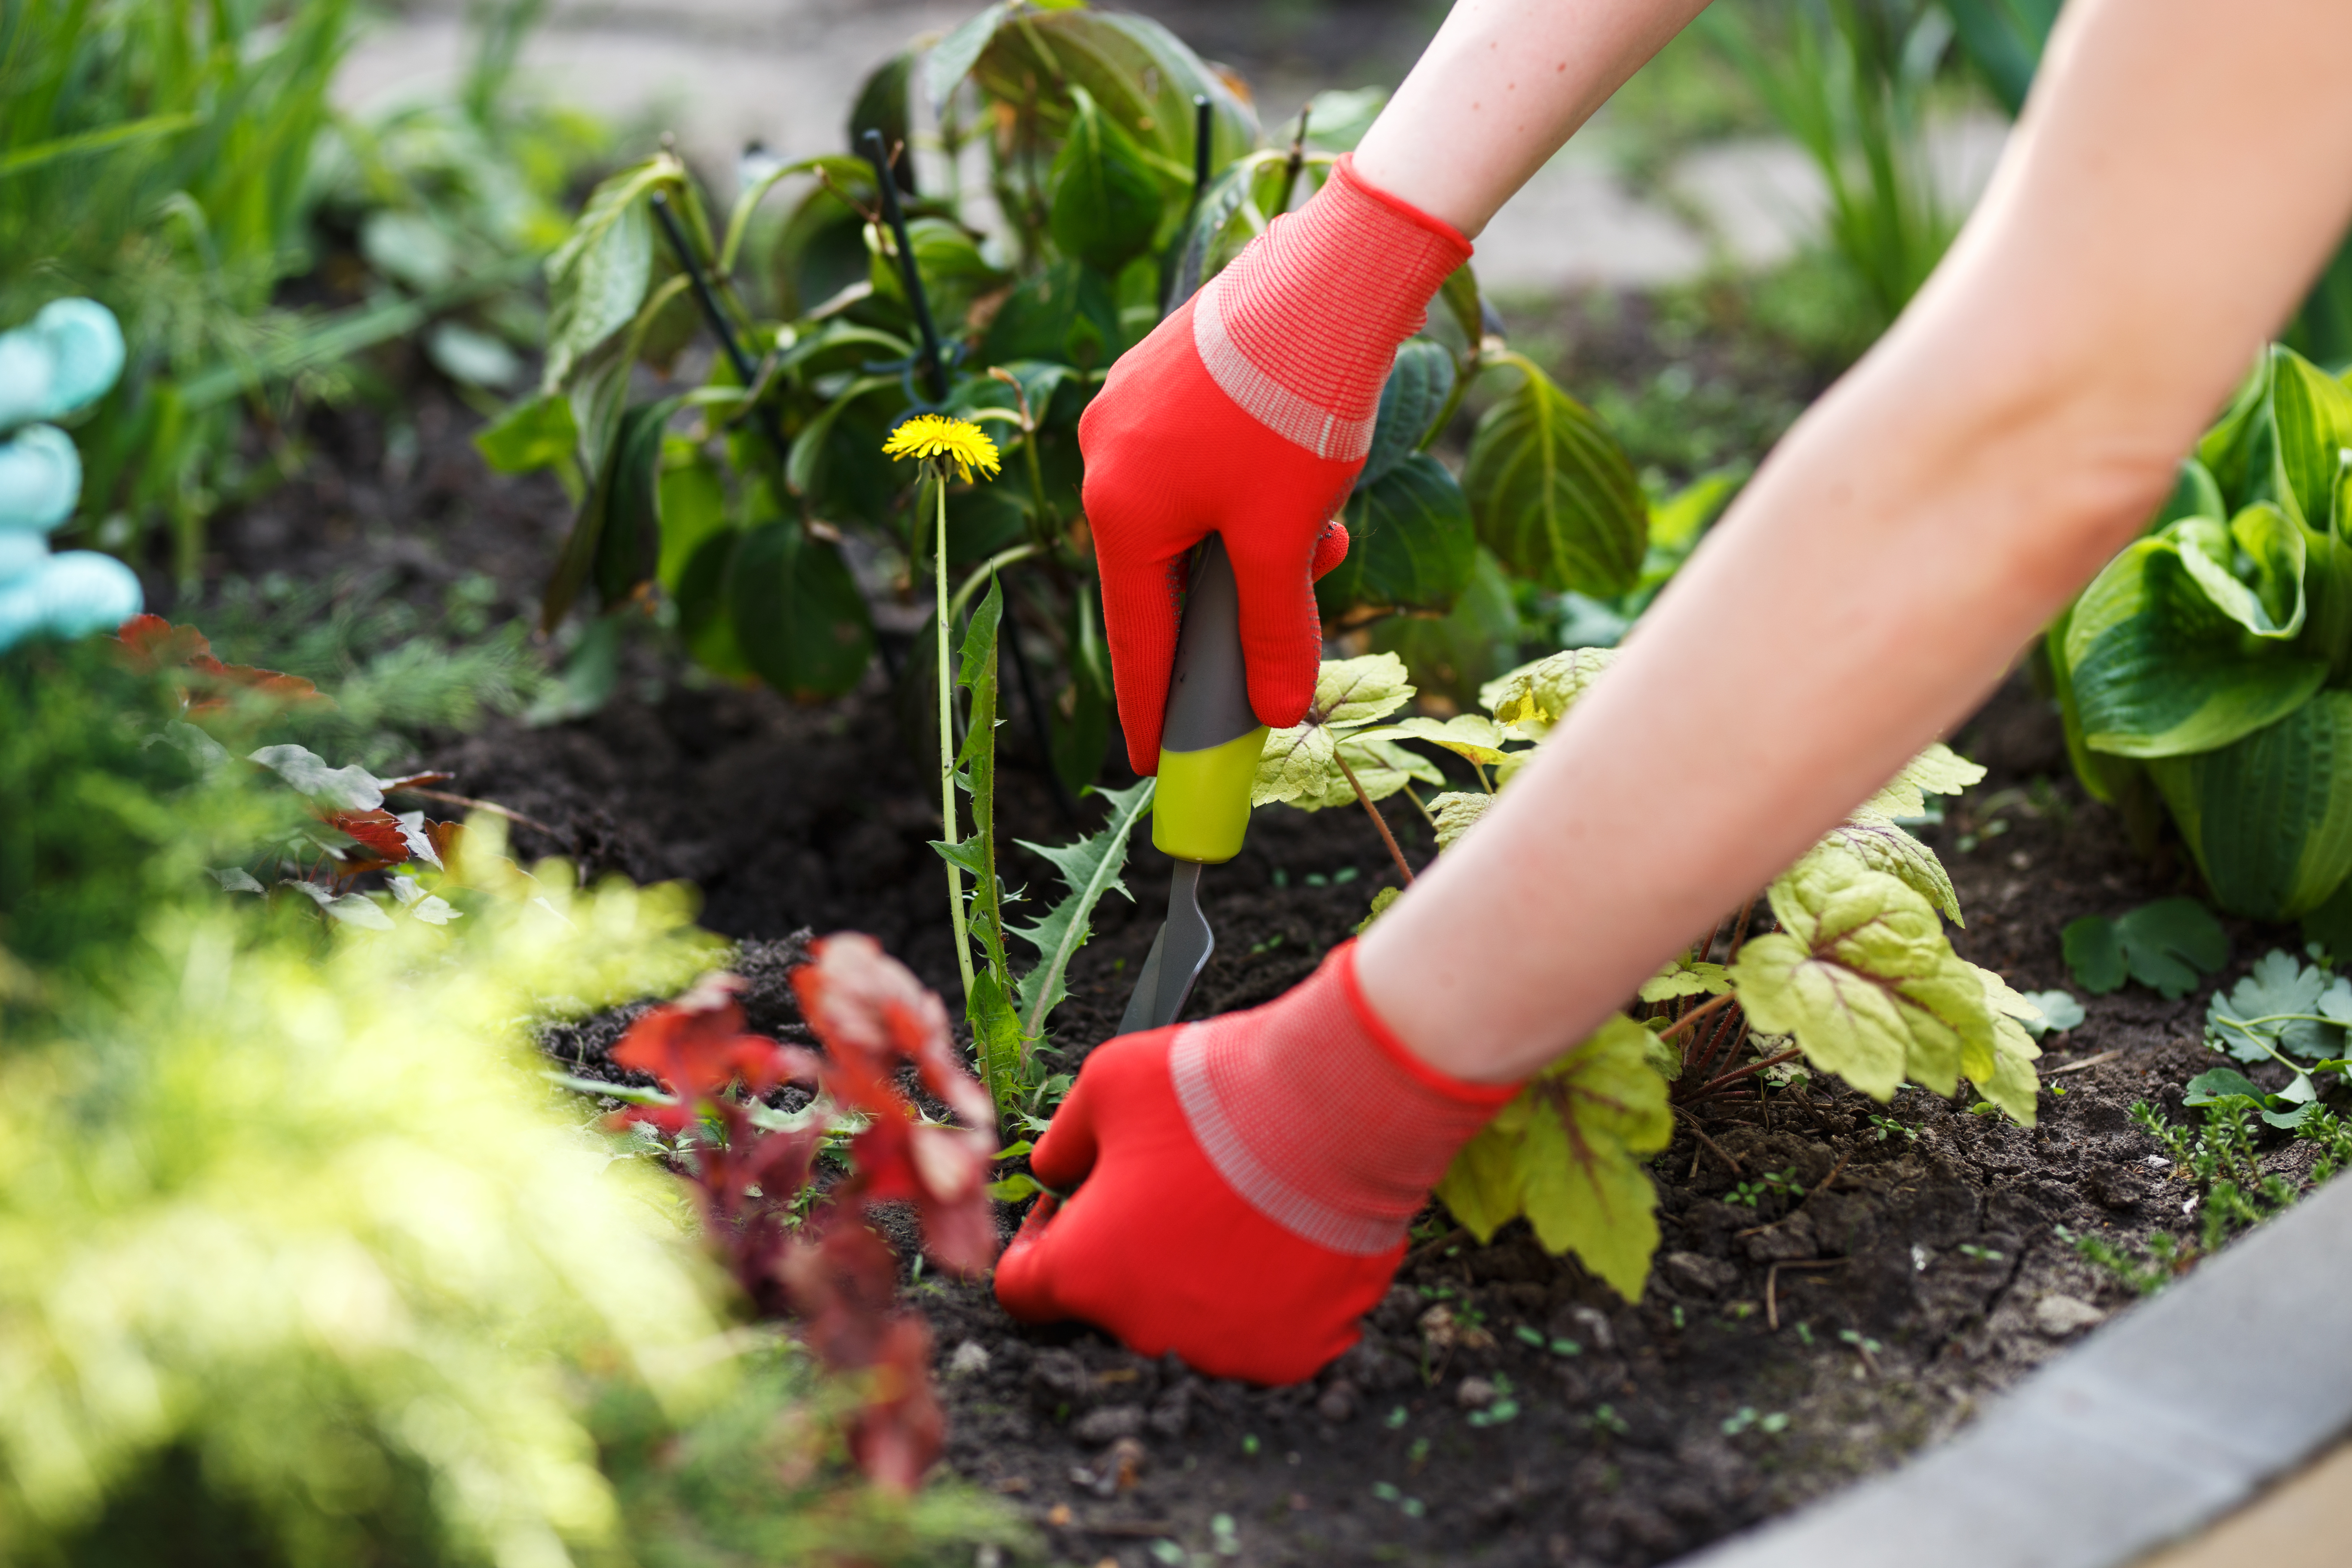 Weed Control With Bleach or Vinegar | Home Guides | SF Gate